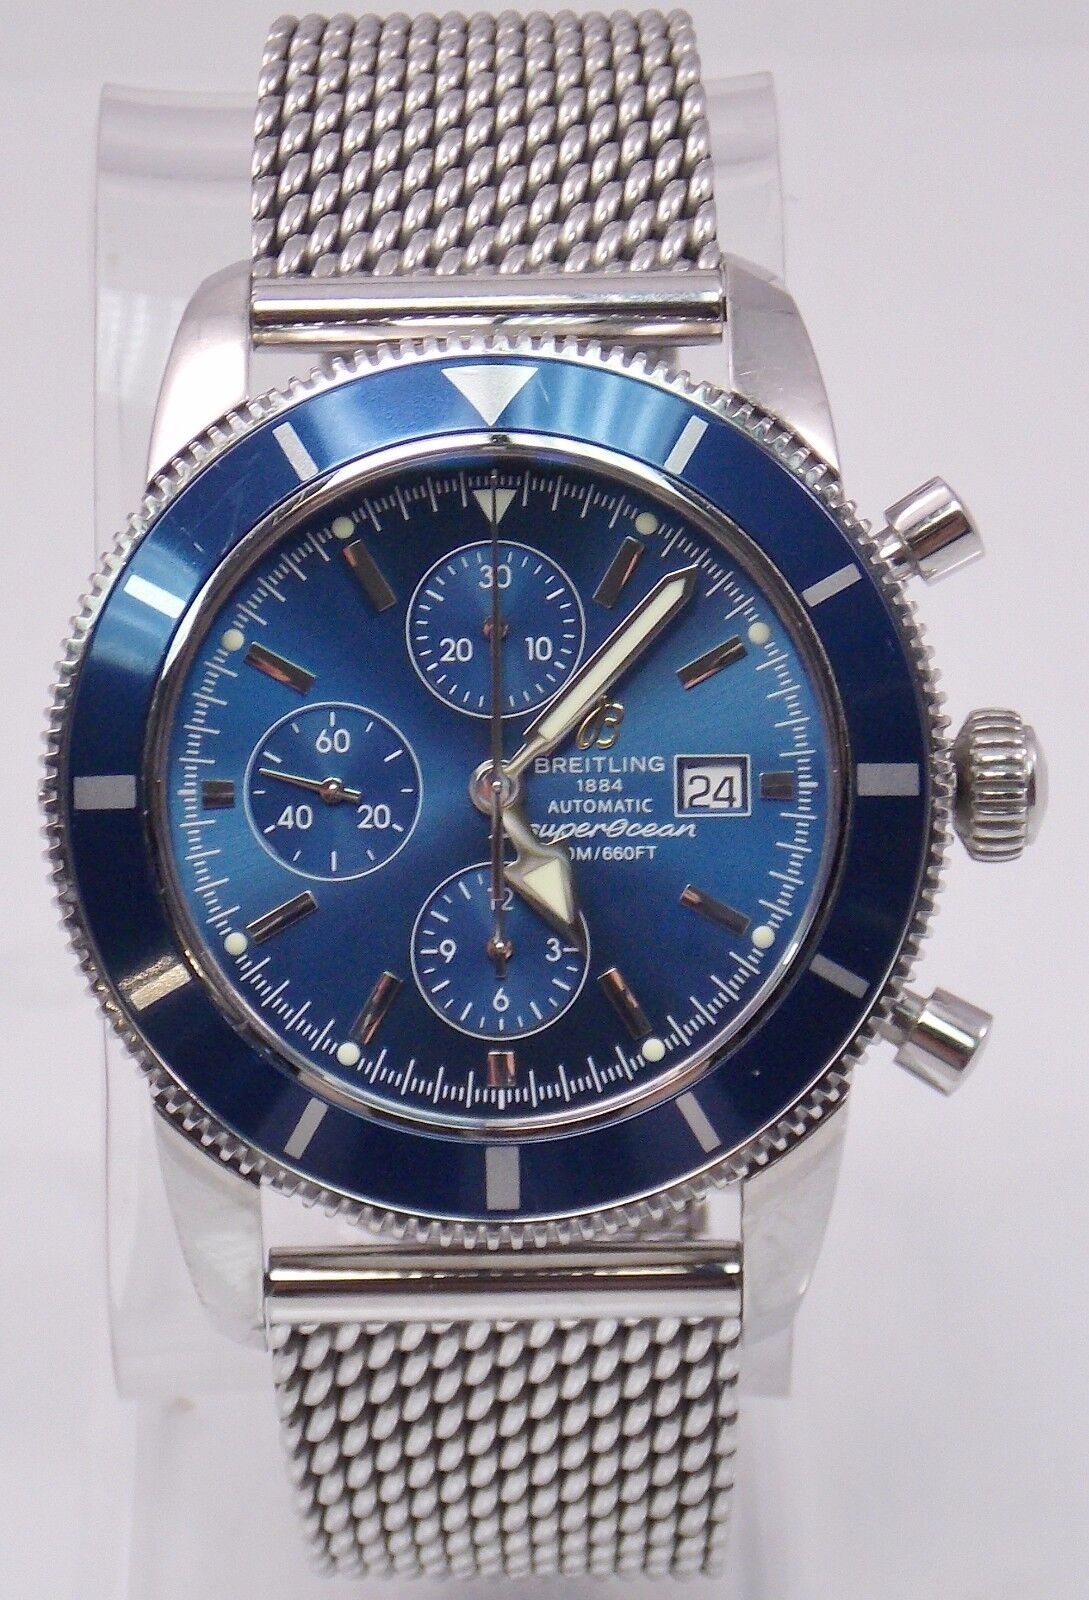 $2856.57 - Breitling SuperOcean Chronograph Heritage Stainless Steel Men's Watch A13320